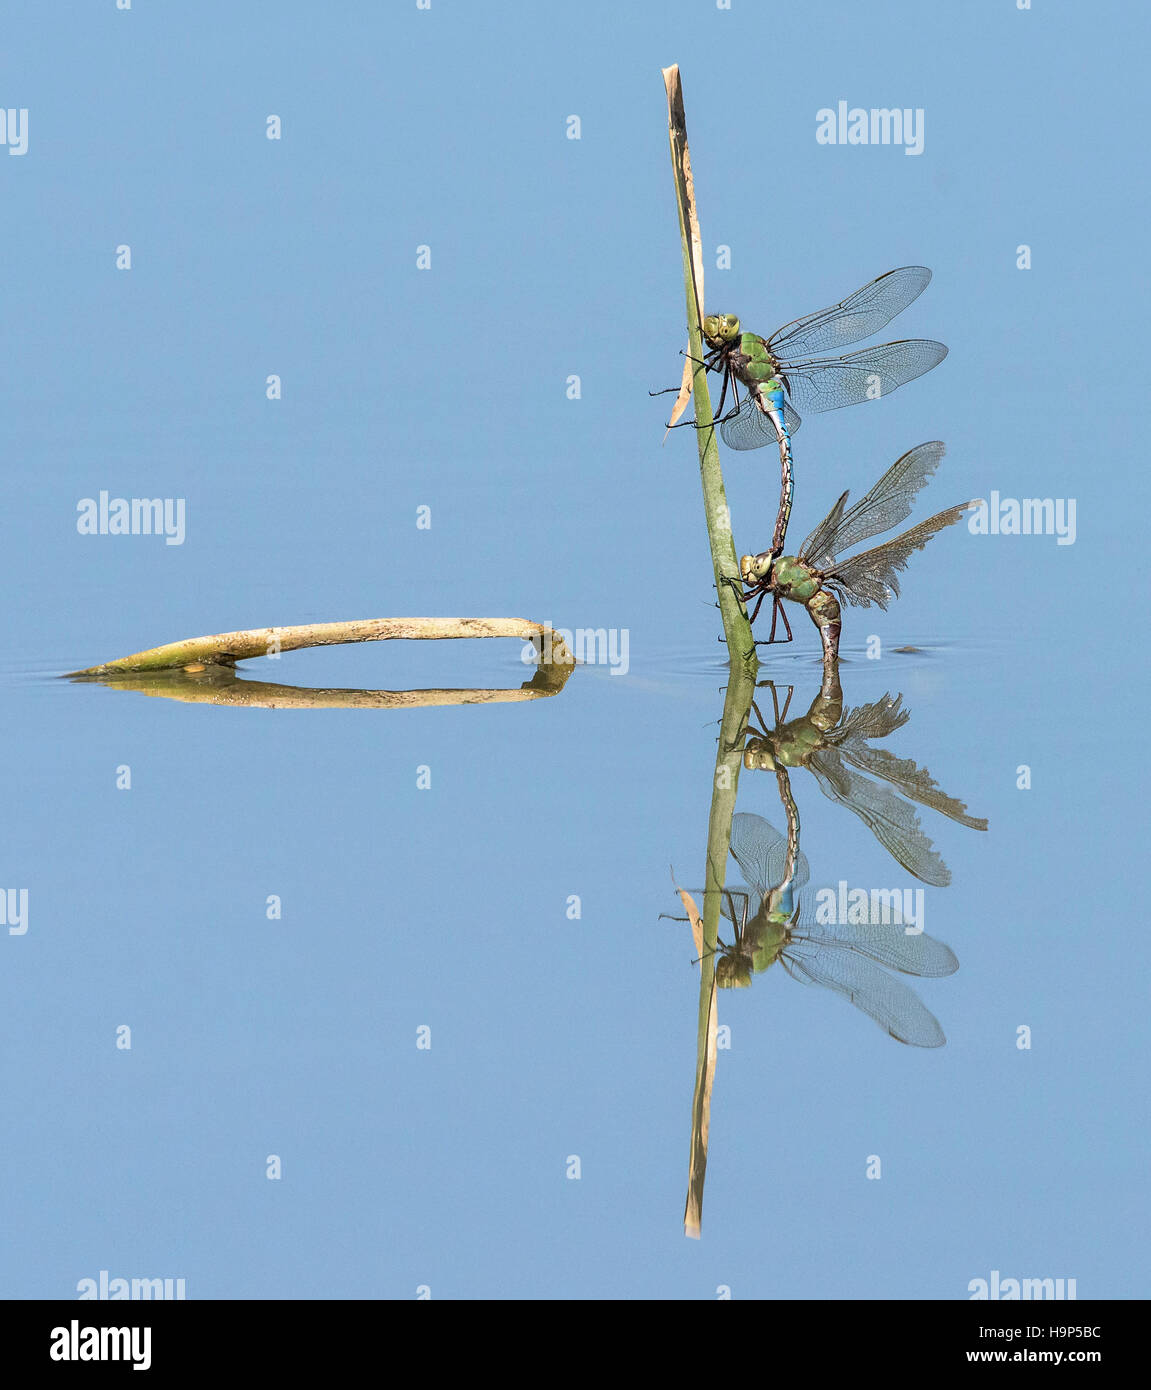 Mating Dragonflies with Reflection - Stock Image